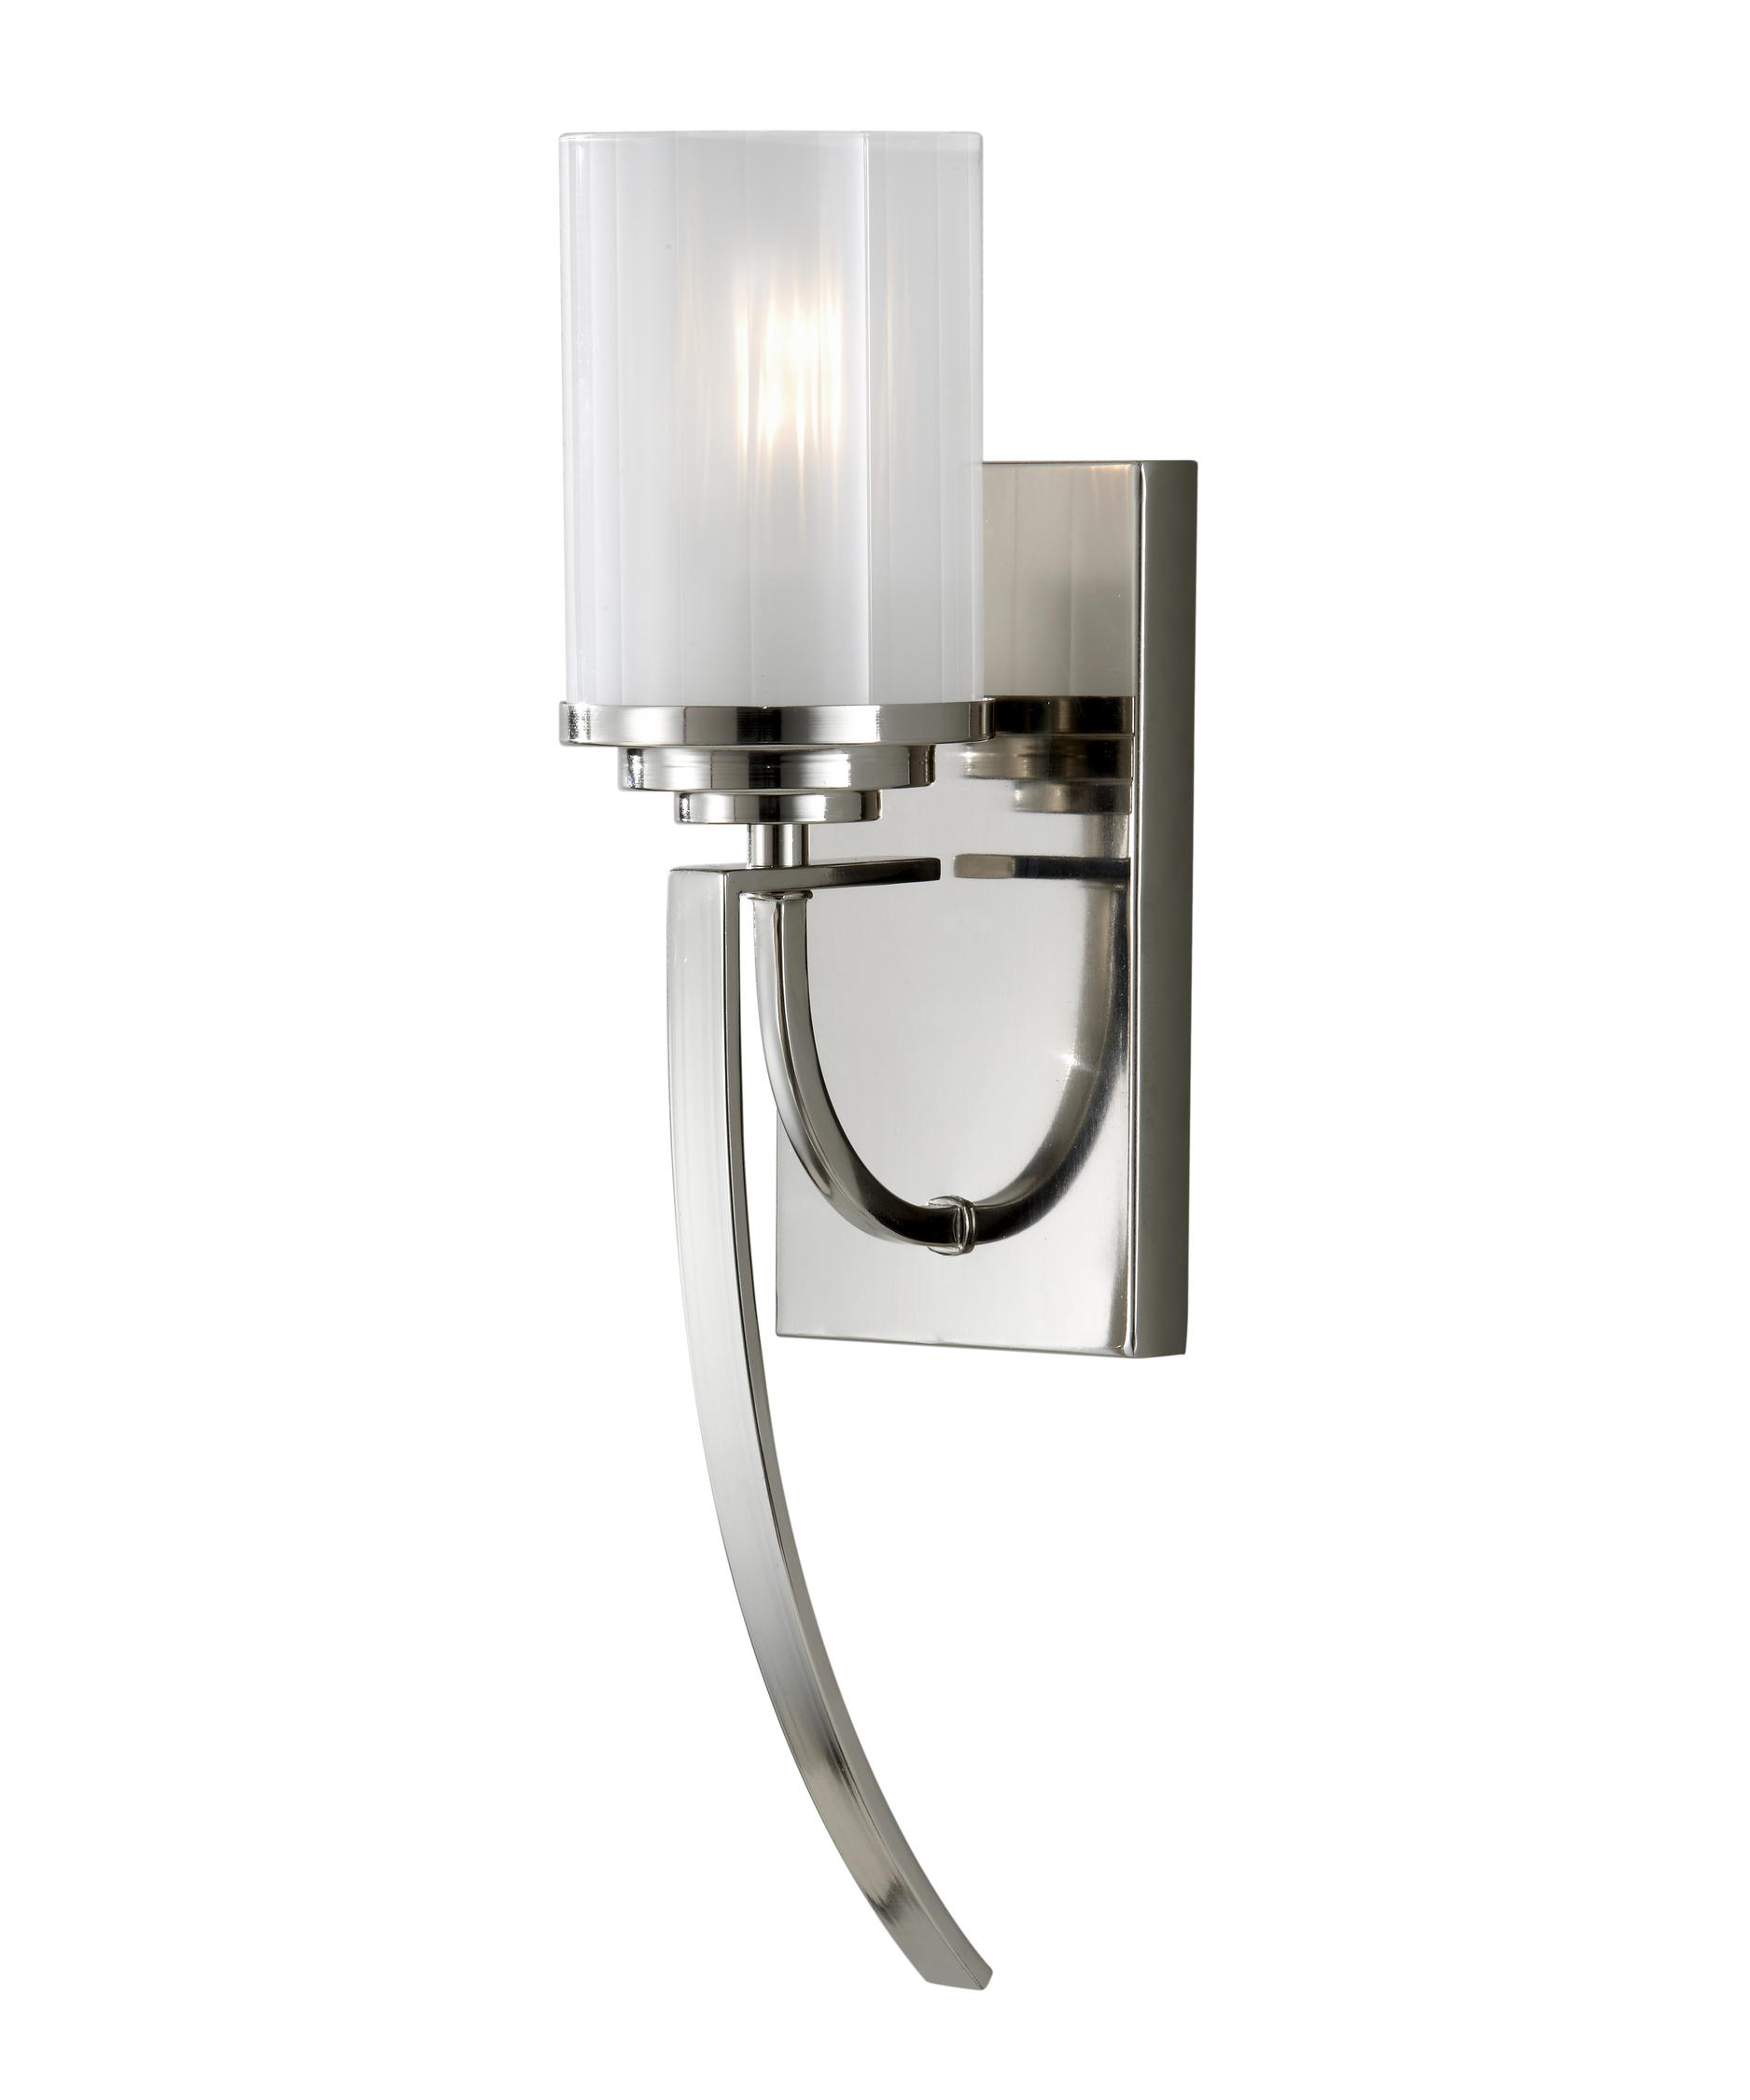 Murray Feiss Wall Sconces: Murray Feiss WB1561 Finley 18 Inch Wall Sconce